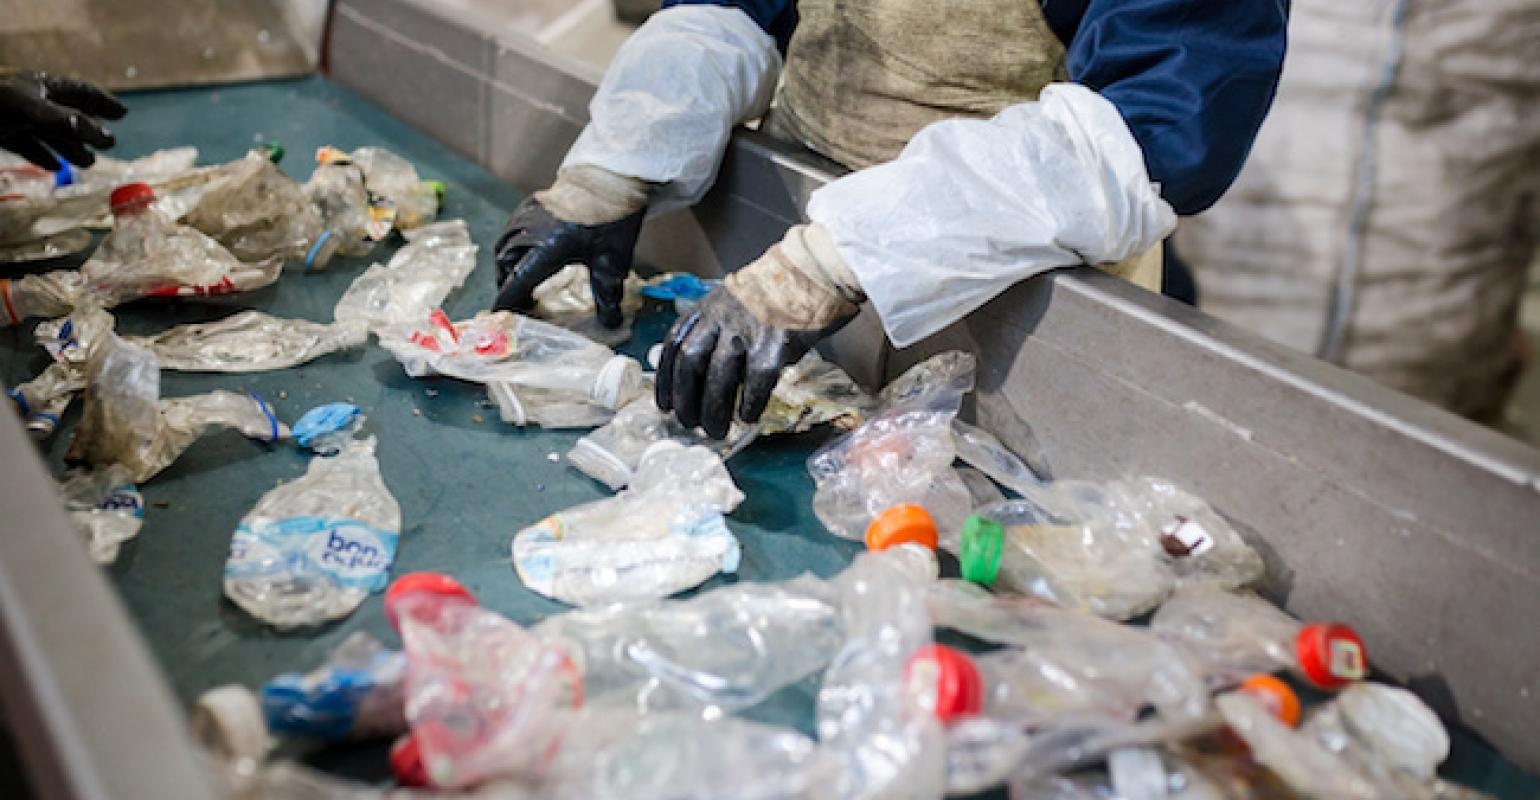 Report investigates failure of recycling to address U.S. plastic waste |  plasticstoday.com